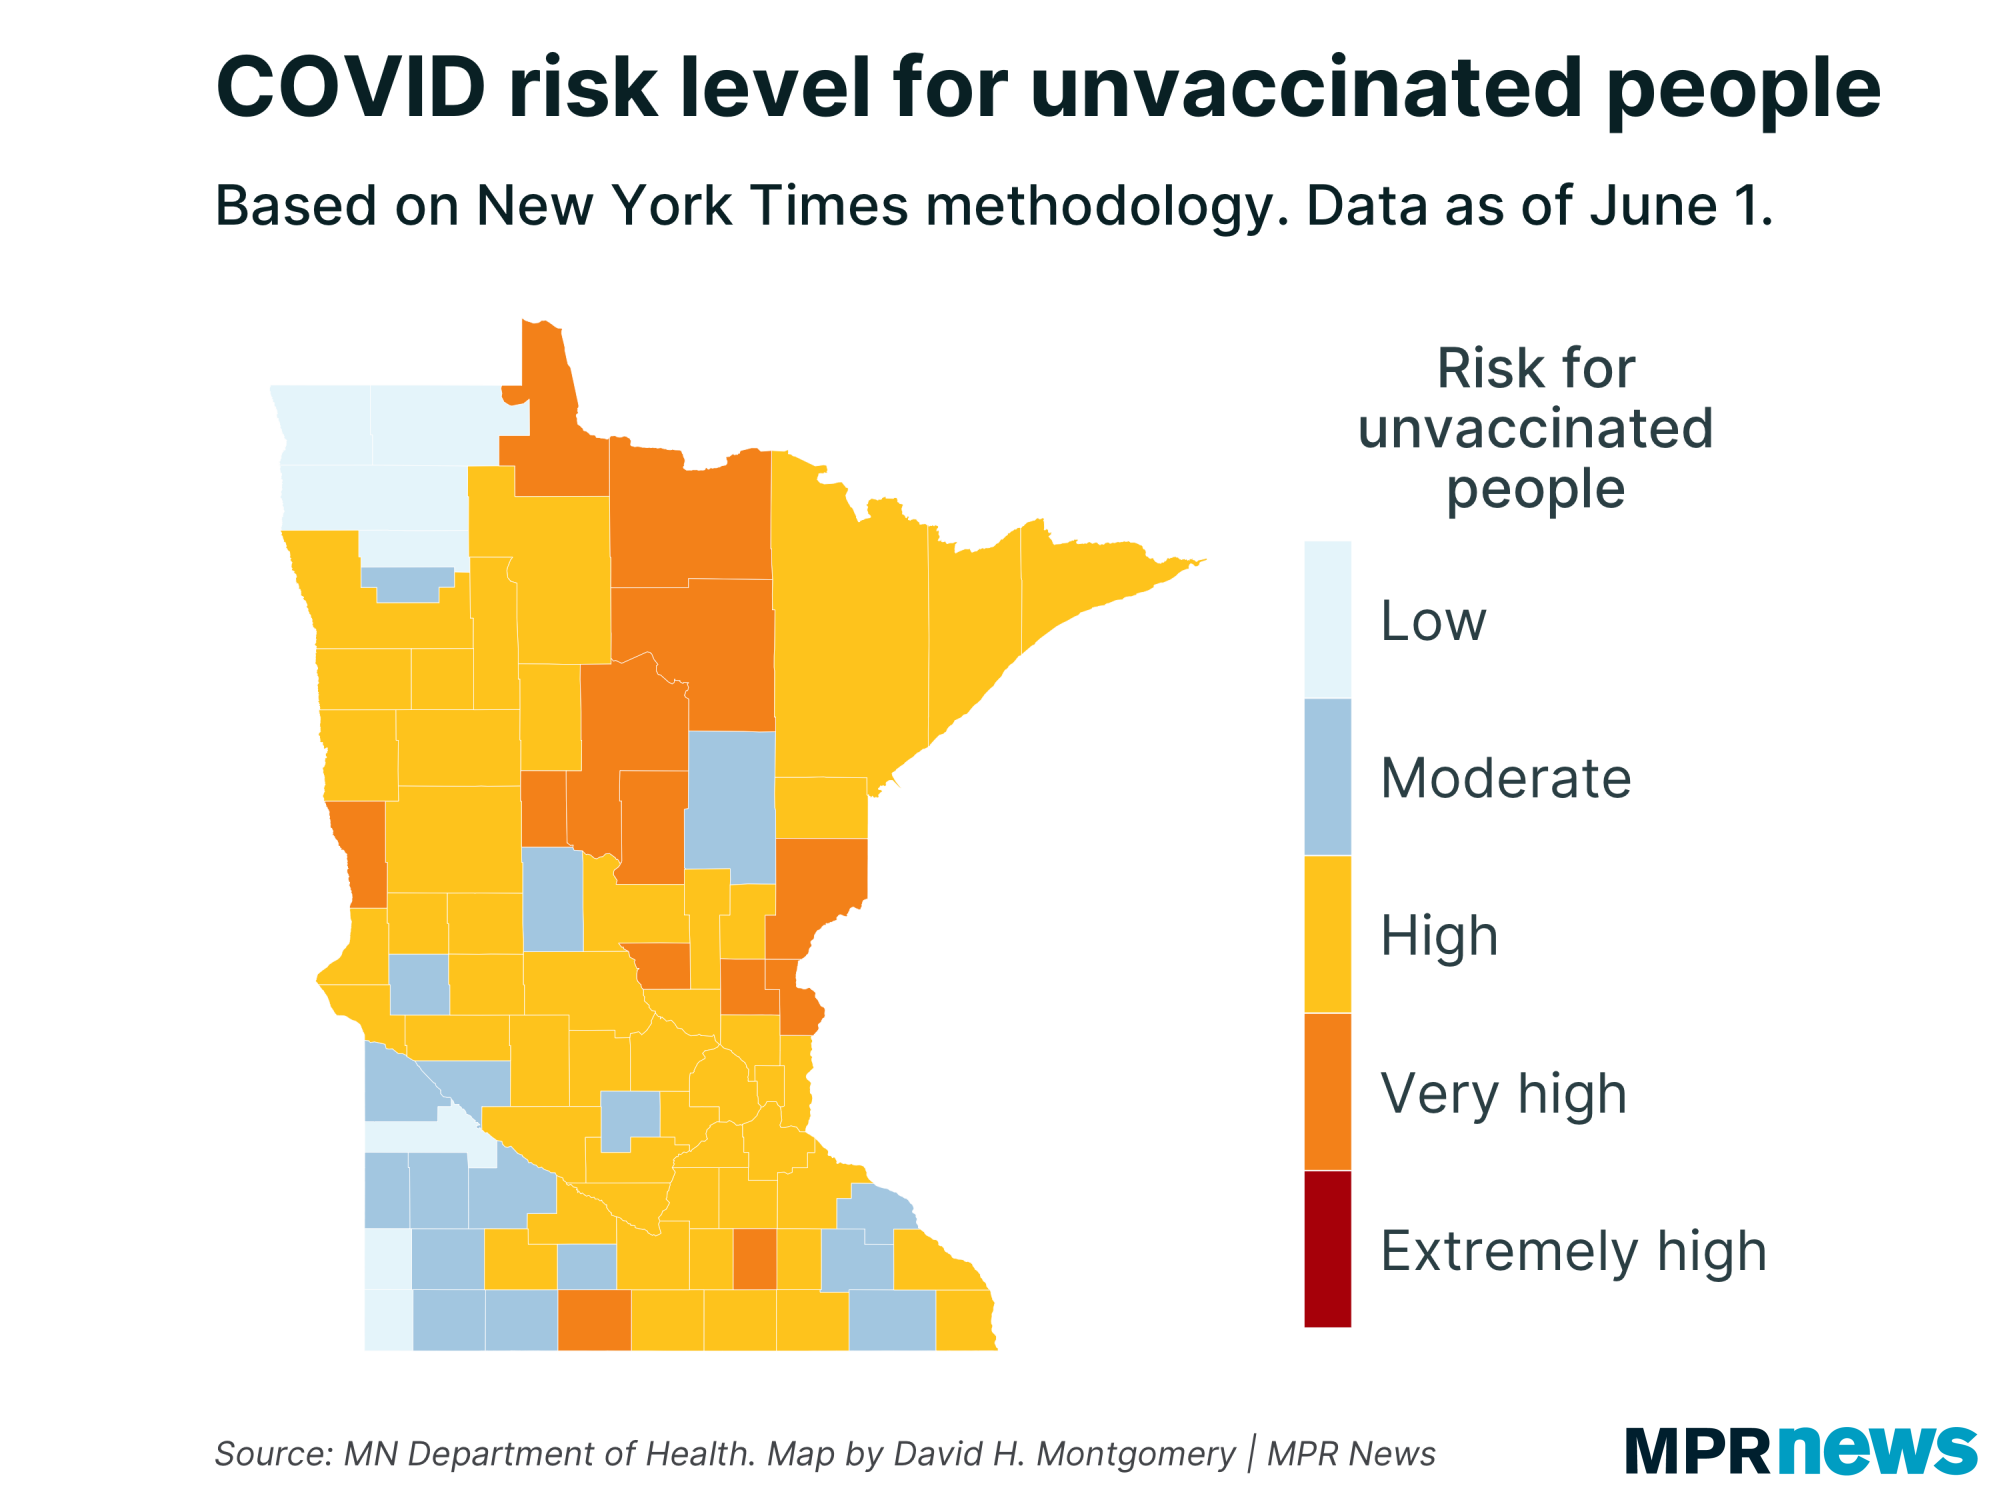 COVID-19 risk level for unvaccinated people